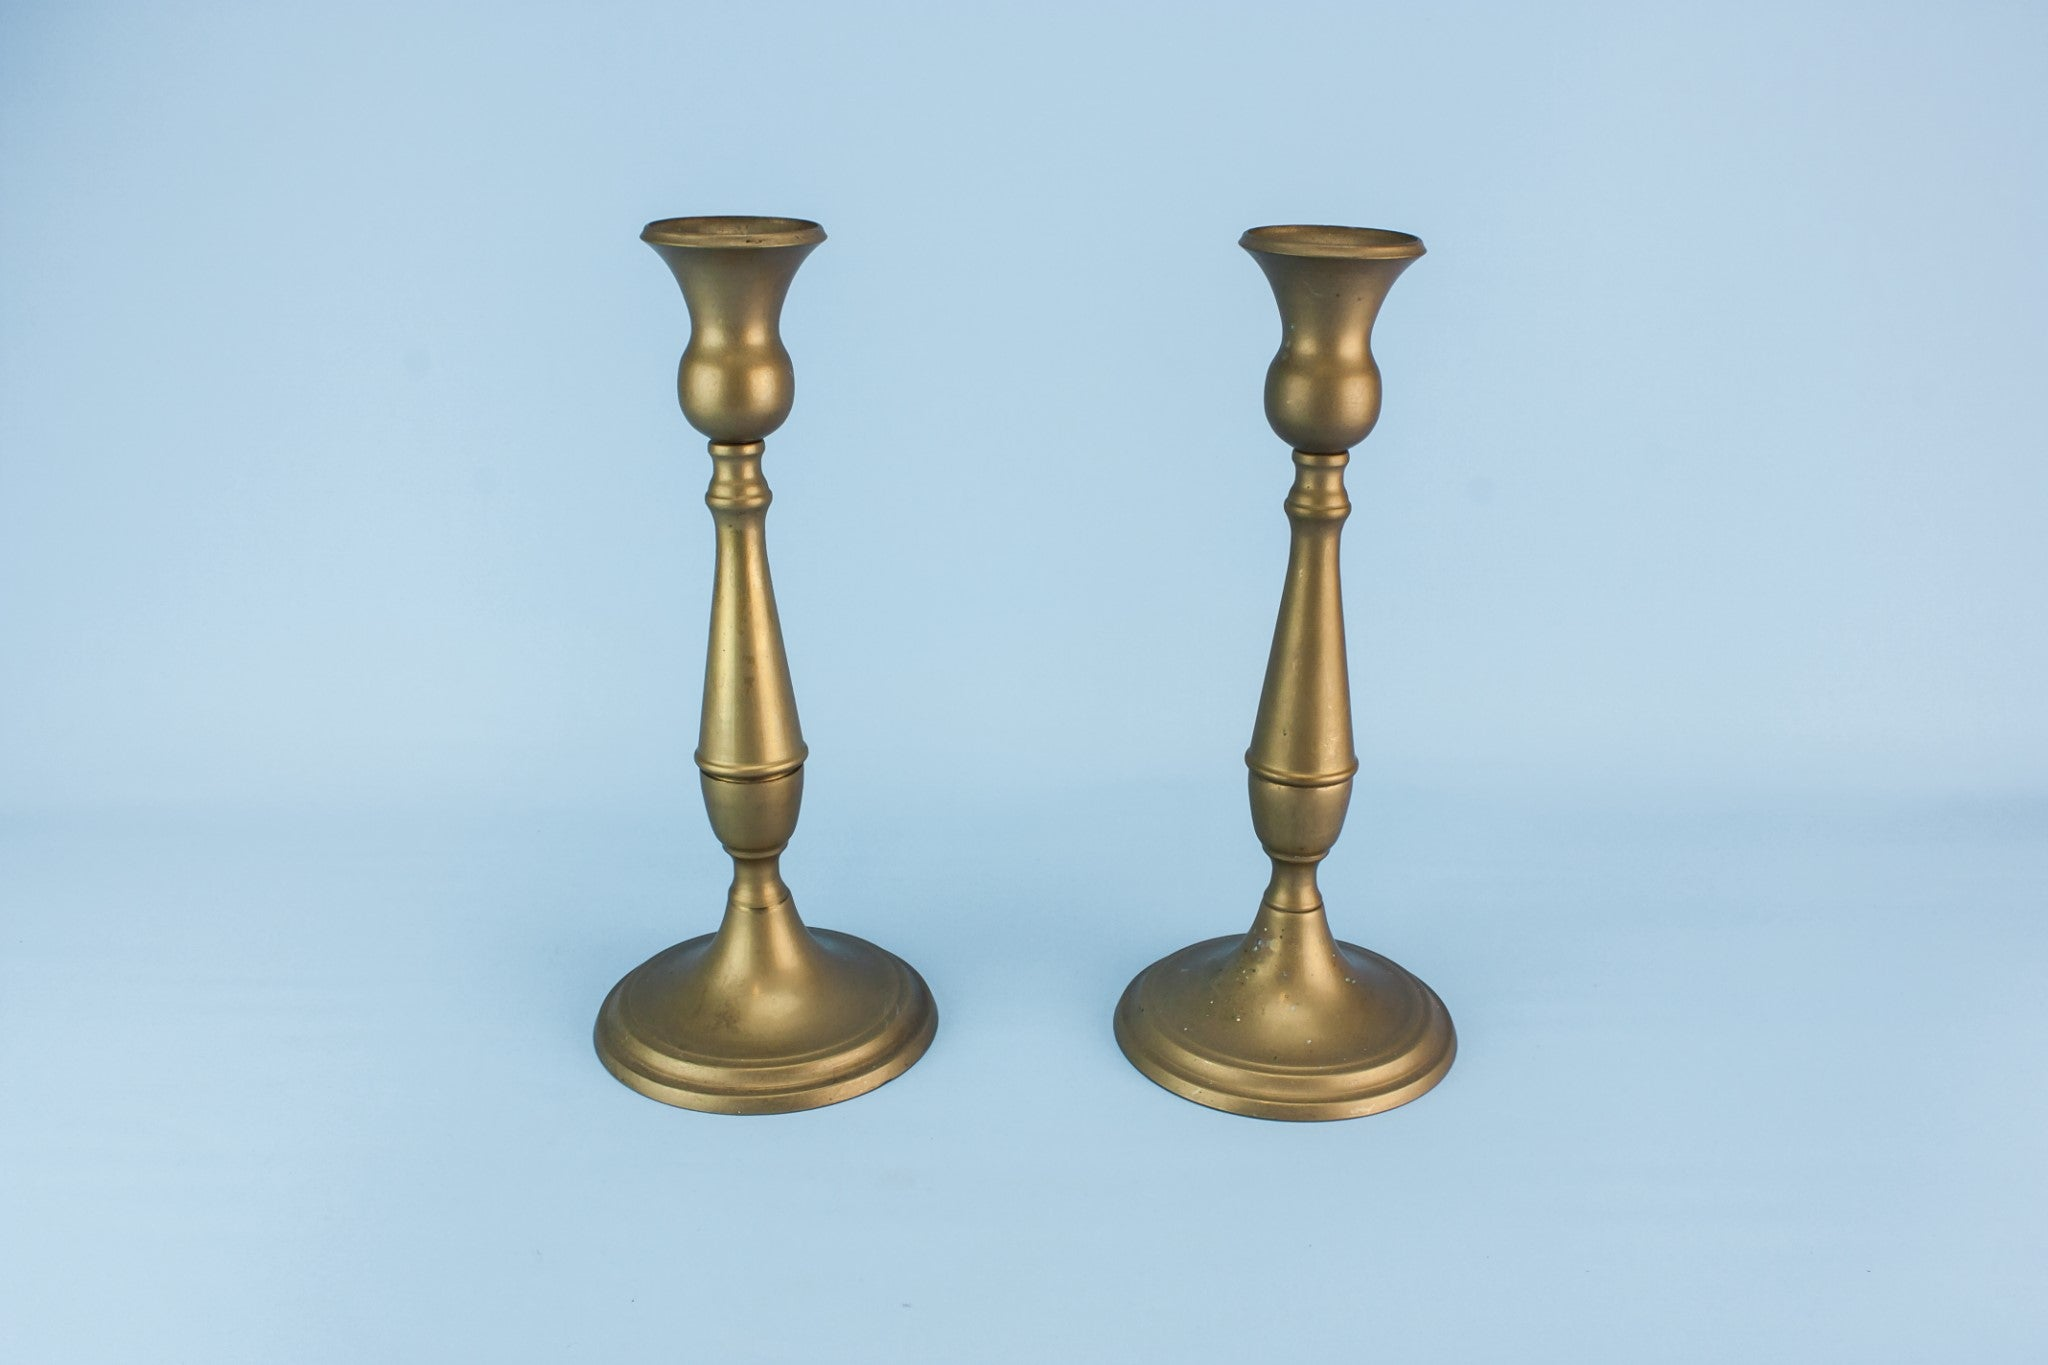 2 brass tall candlesticks